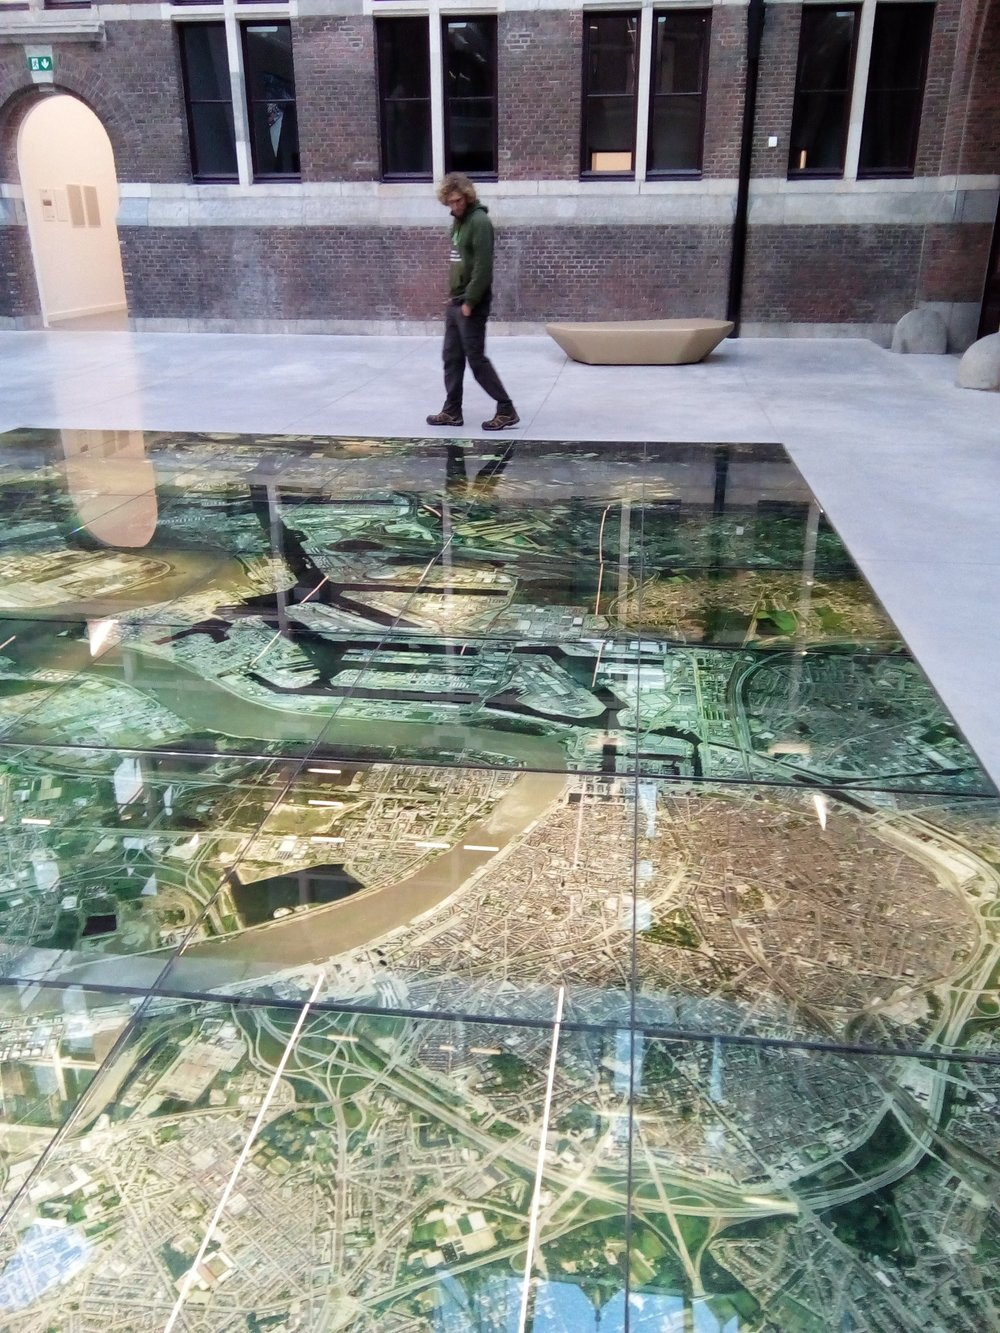 Port House reception area features a photographic map of Antwerp